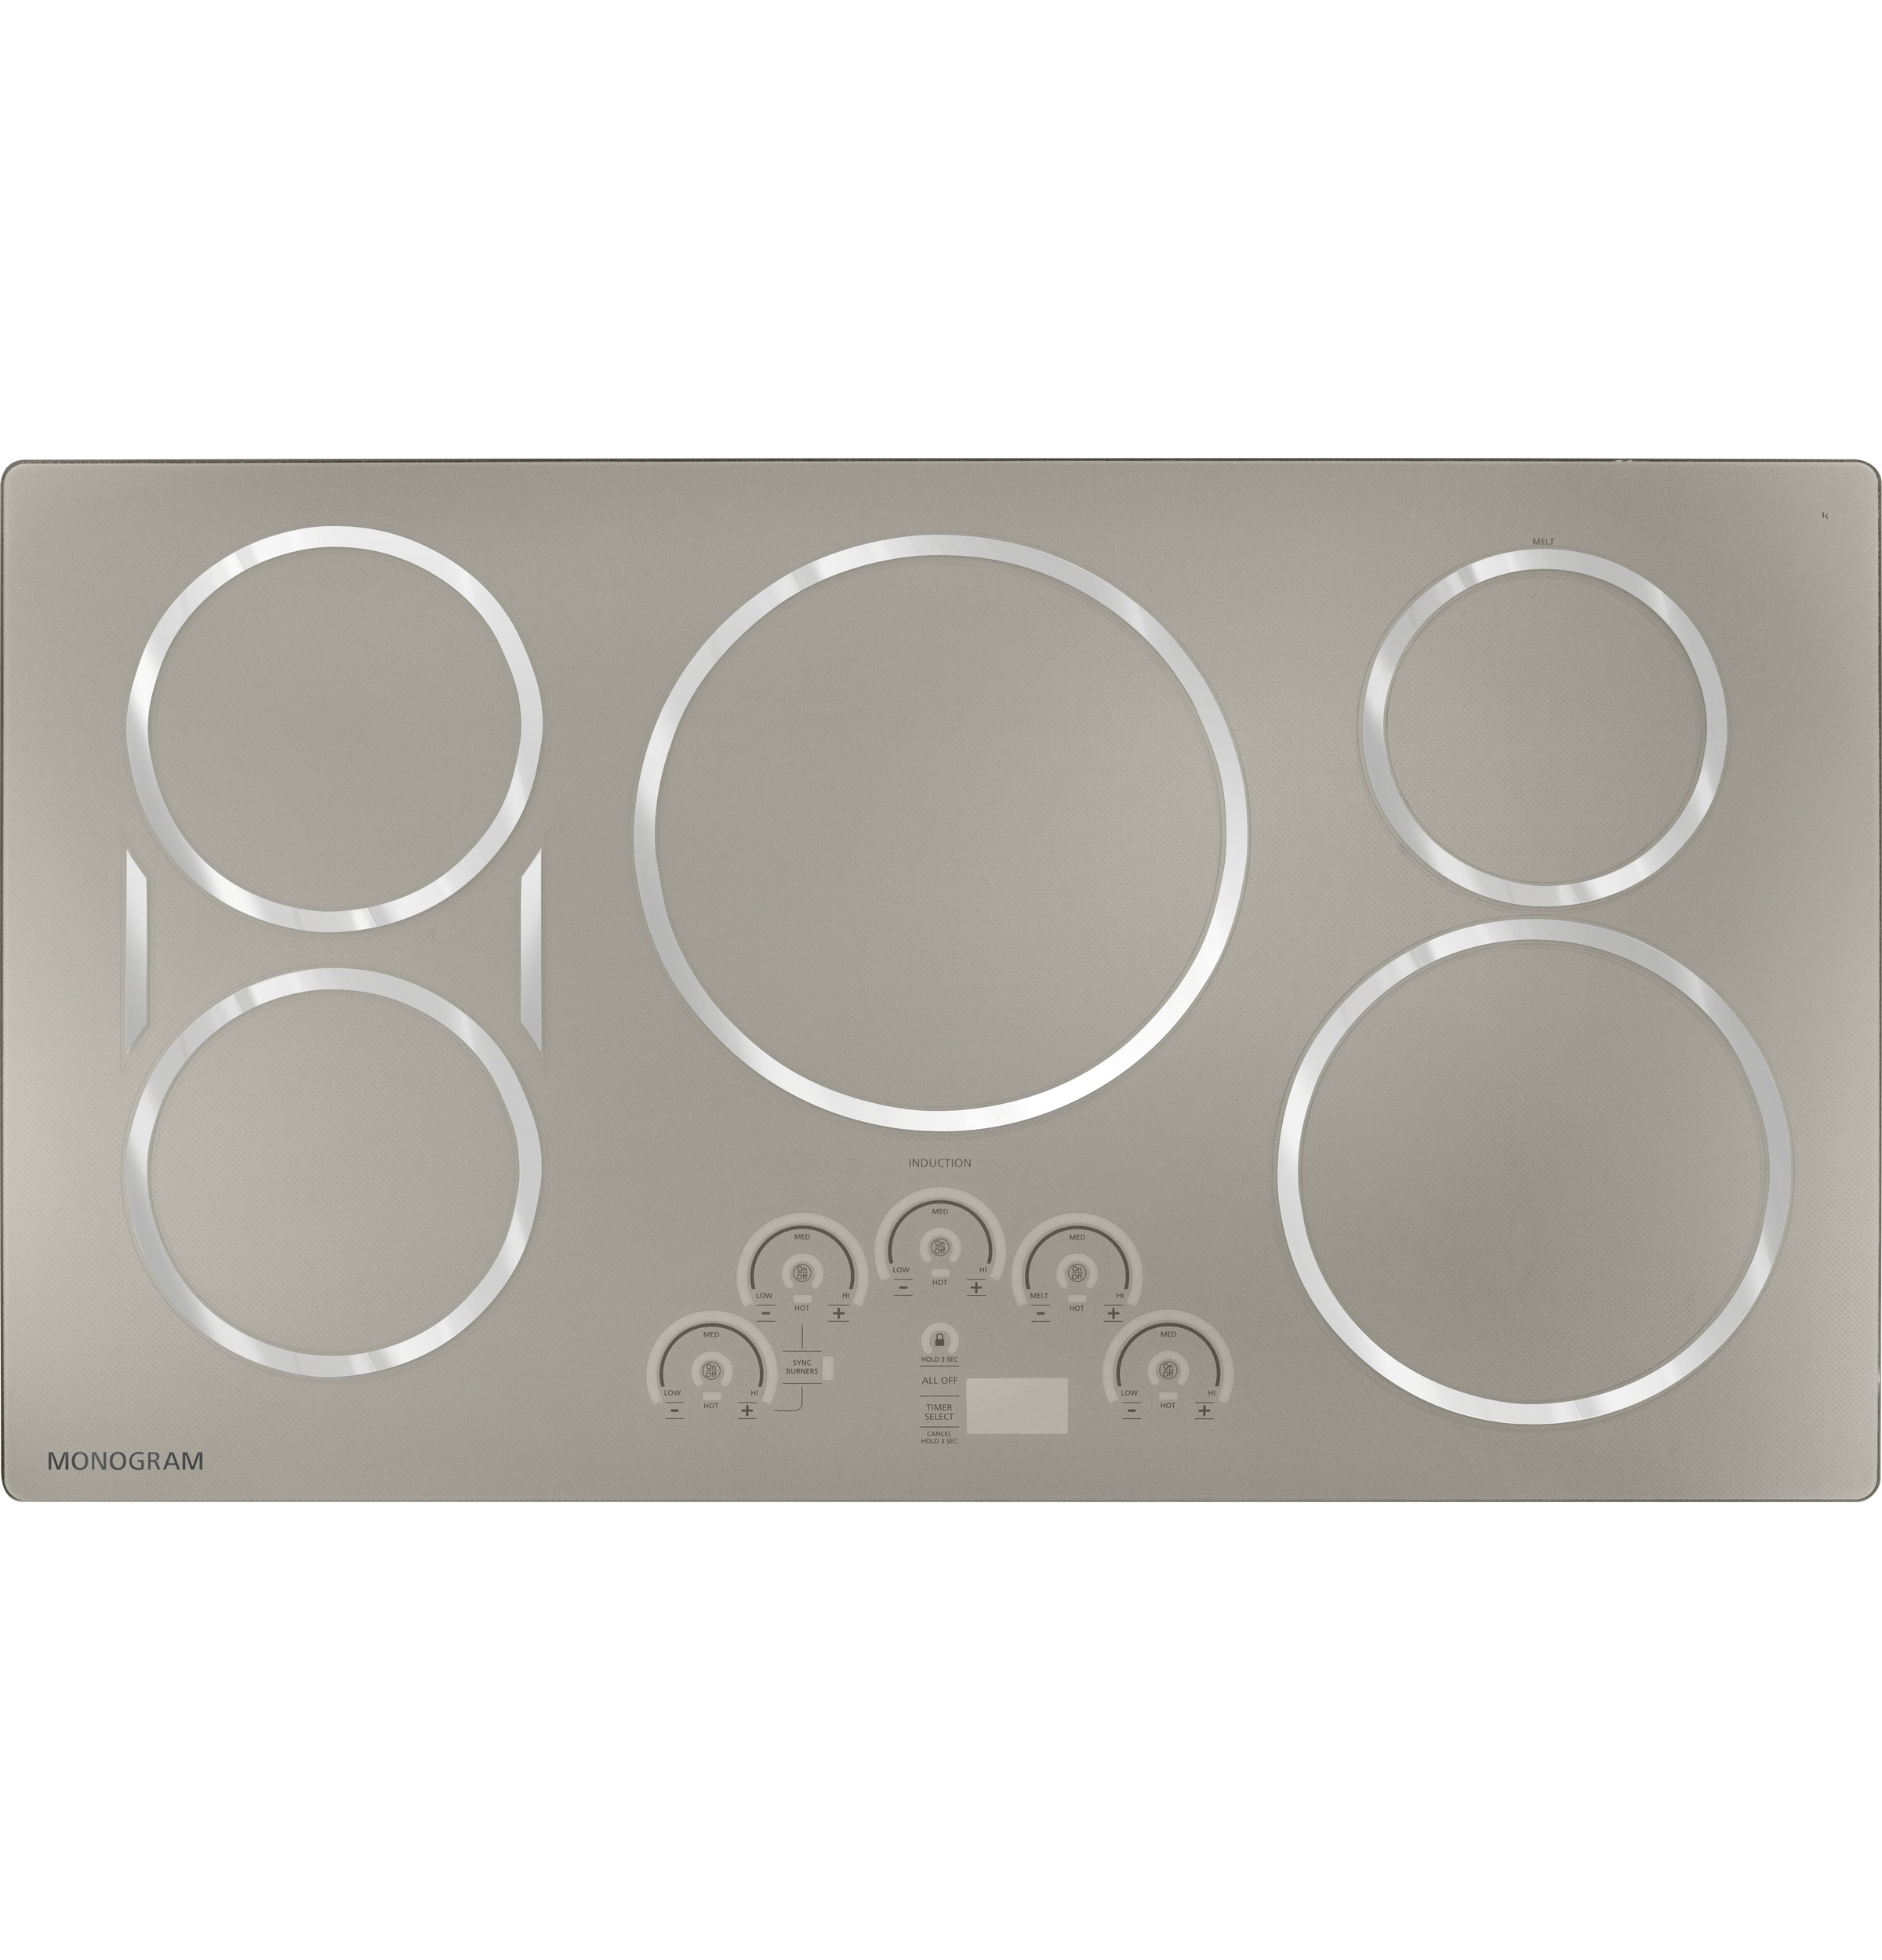 "Monogram Monogram 36"" Induction Cooktop"